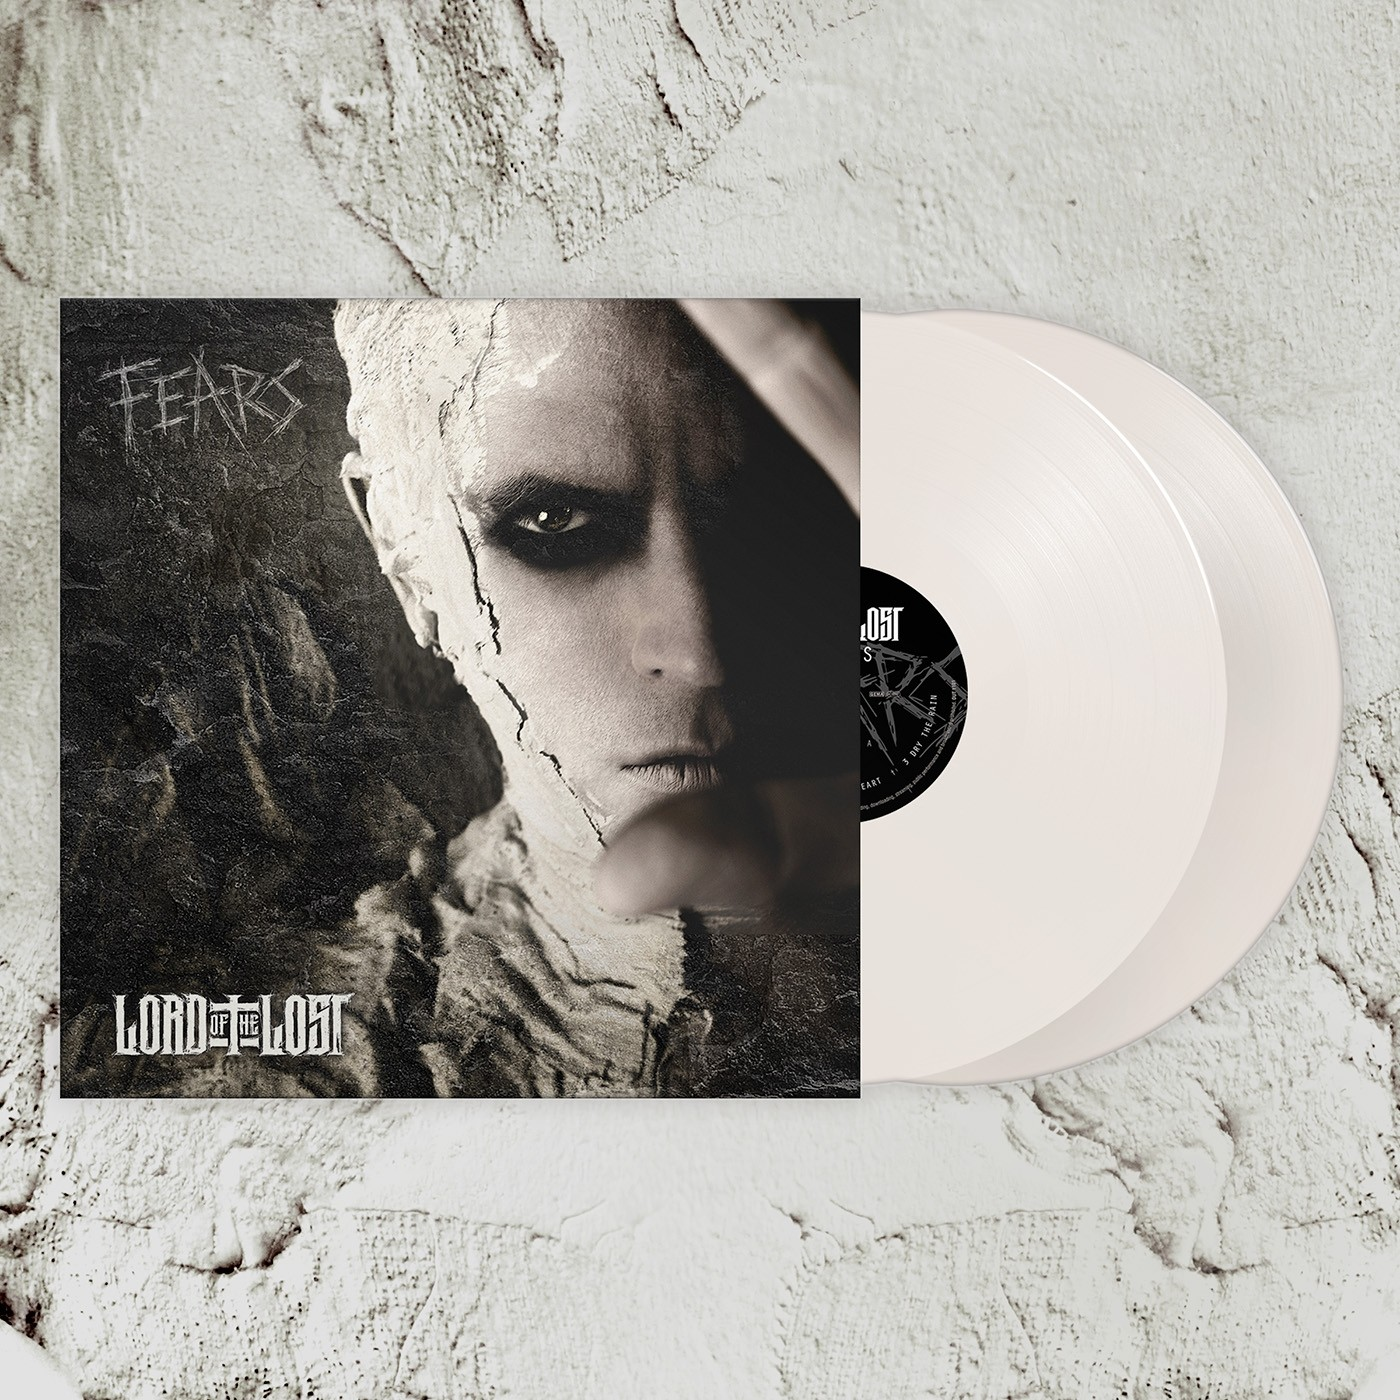 Lord Of The Lost - Fears (10th Anniversary Edition) - 2LP